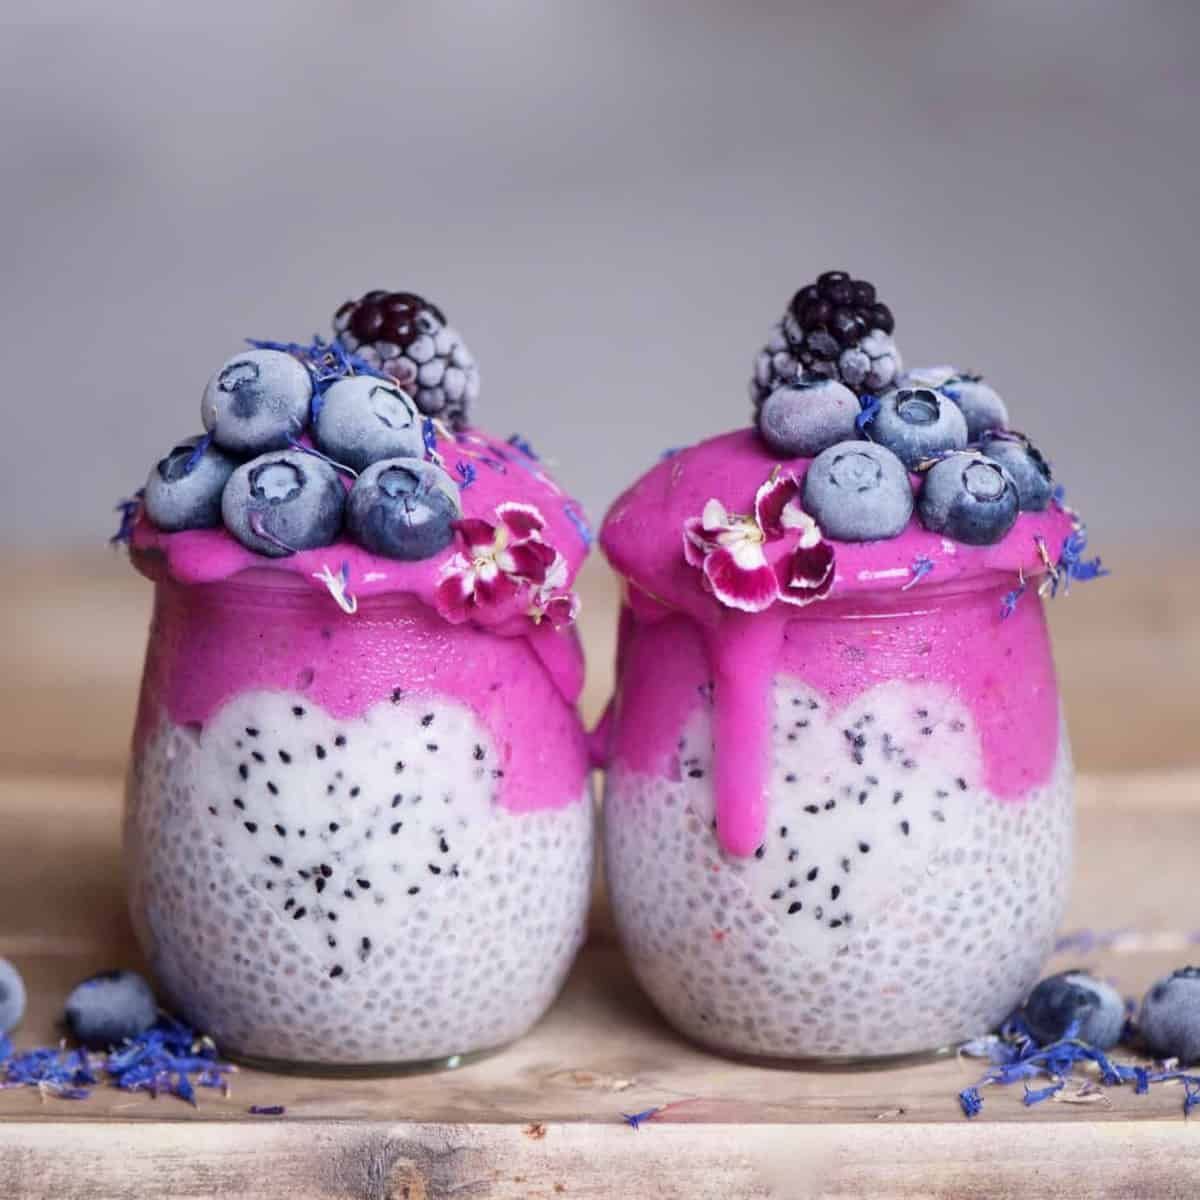 Two jars with chia pudding dragon fruit yogurt decorated with blueberries